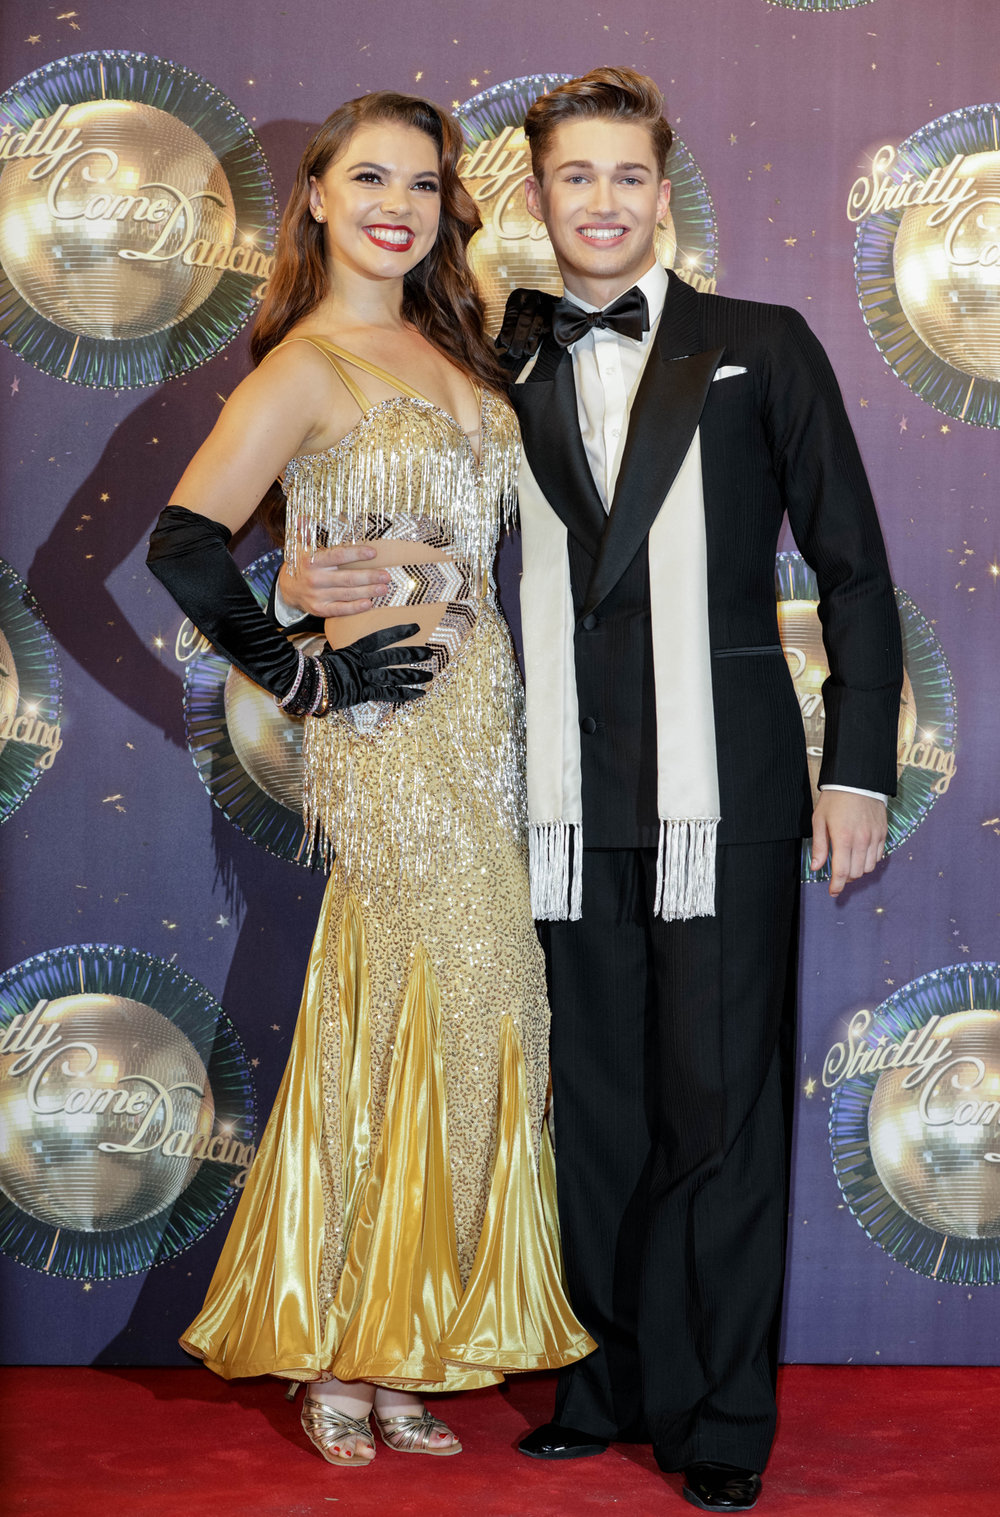 PHT_B5327_strictly_come_dancing_14116.JPG